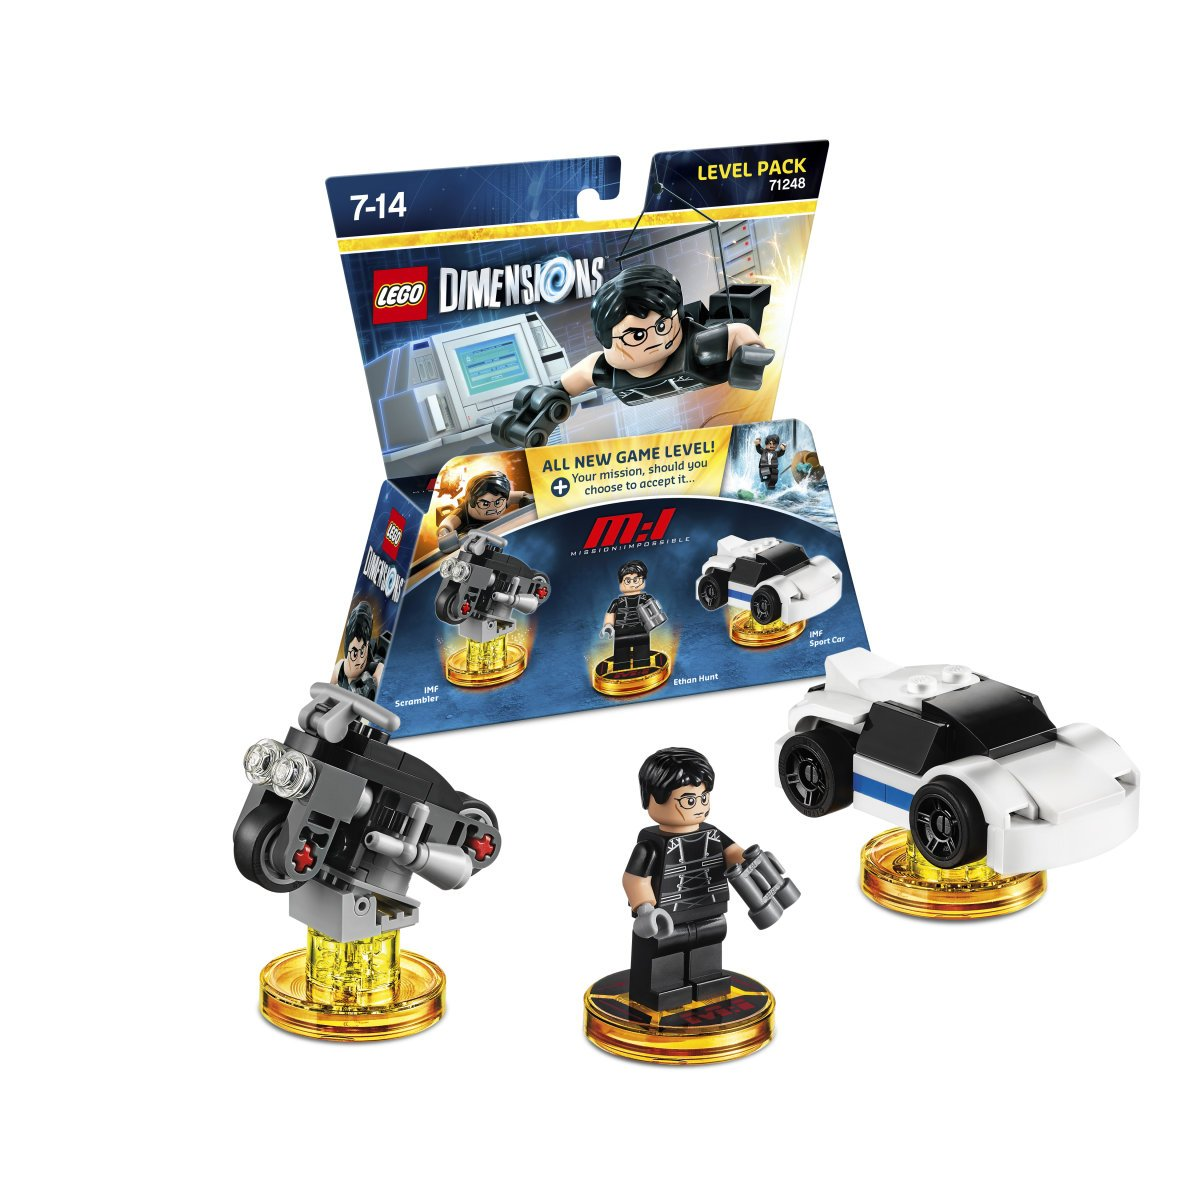 """71248 NEW LEGO Ethan Hunt Dimensions Minifigure /""""Mission Impossible/"""""""